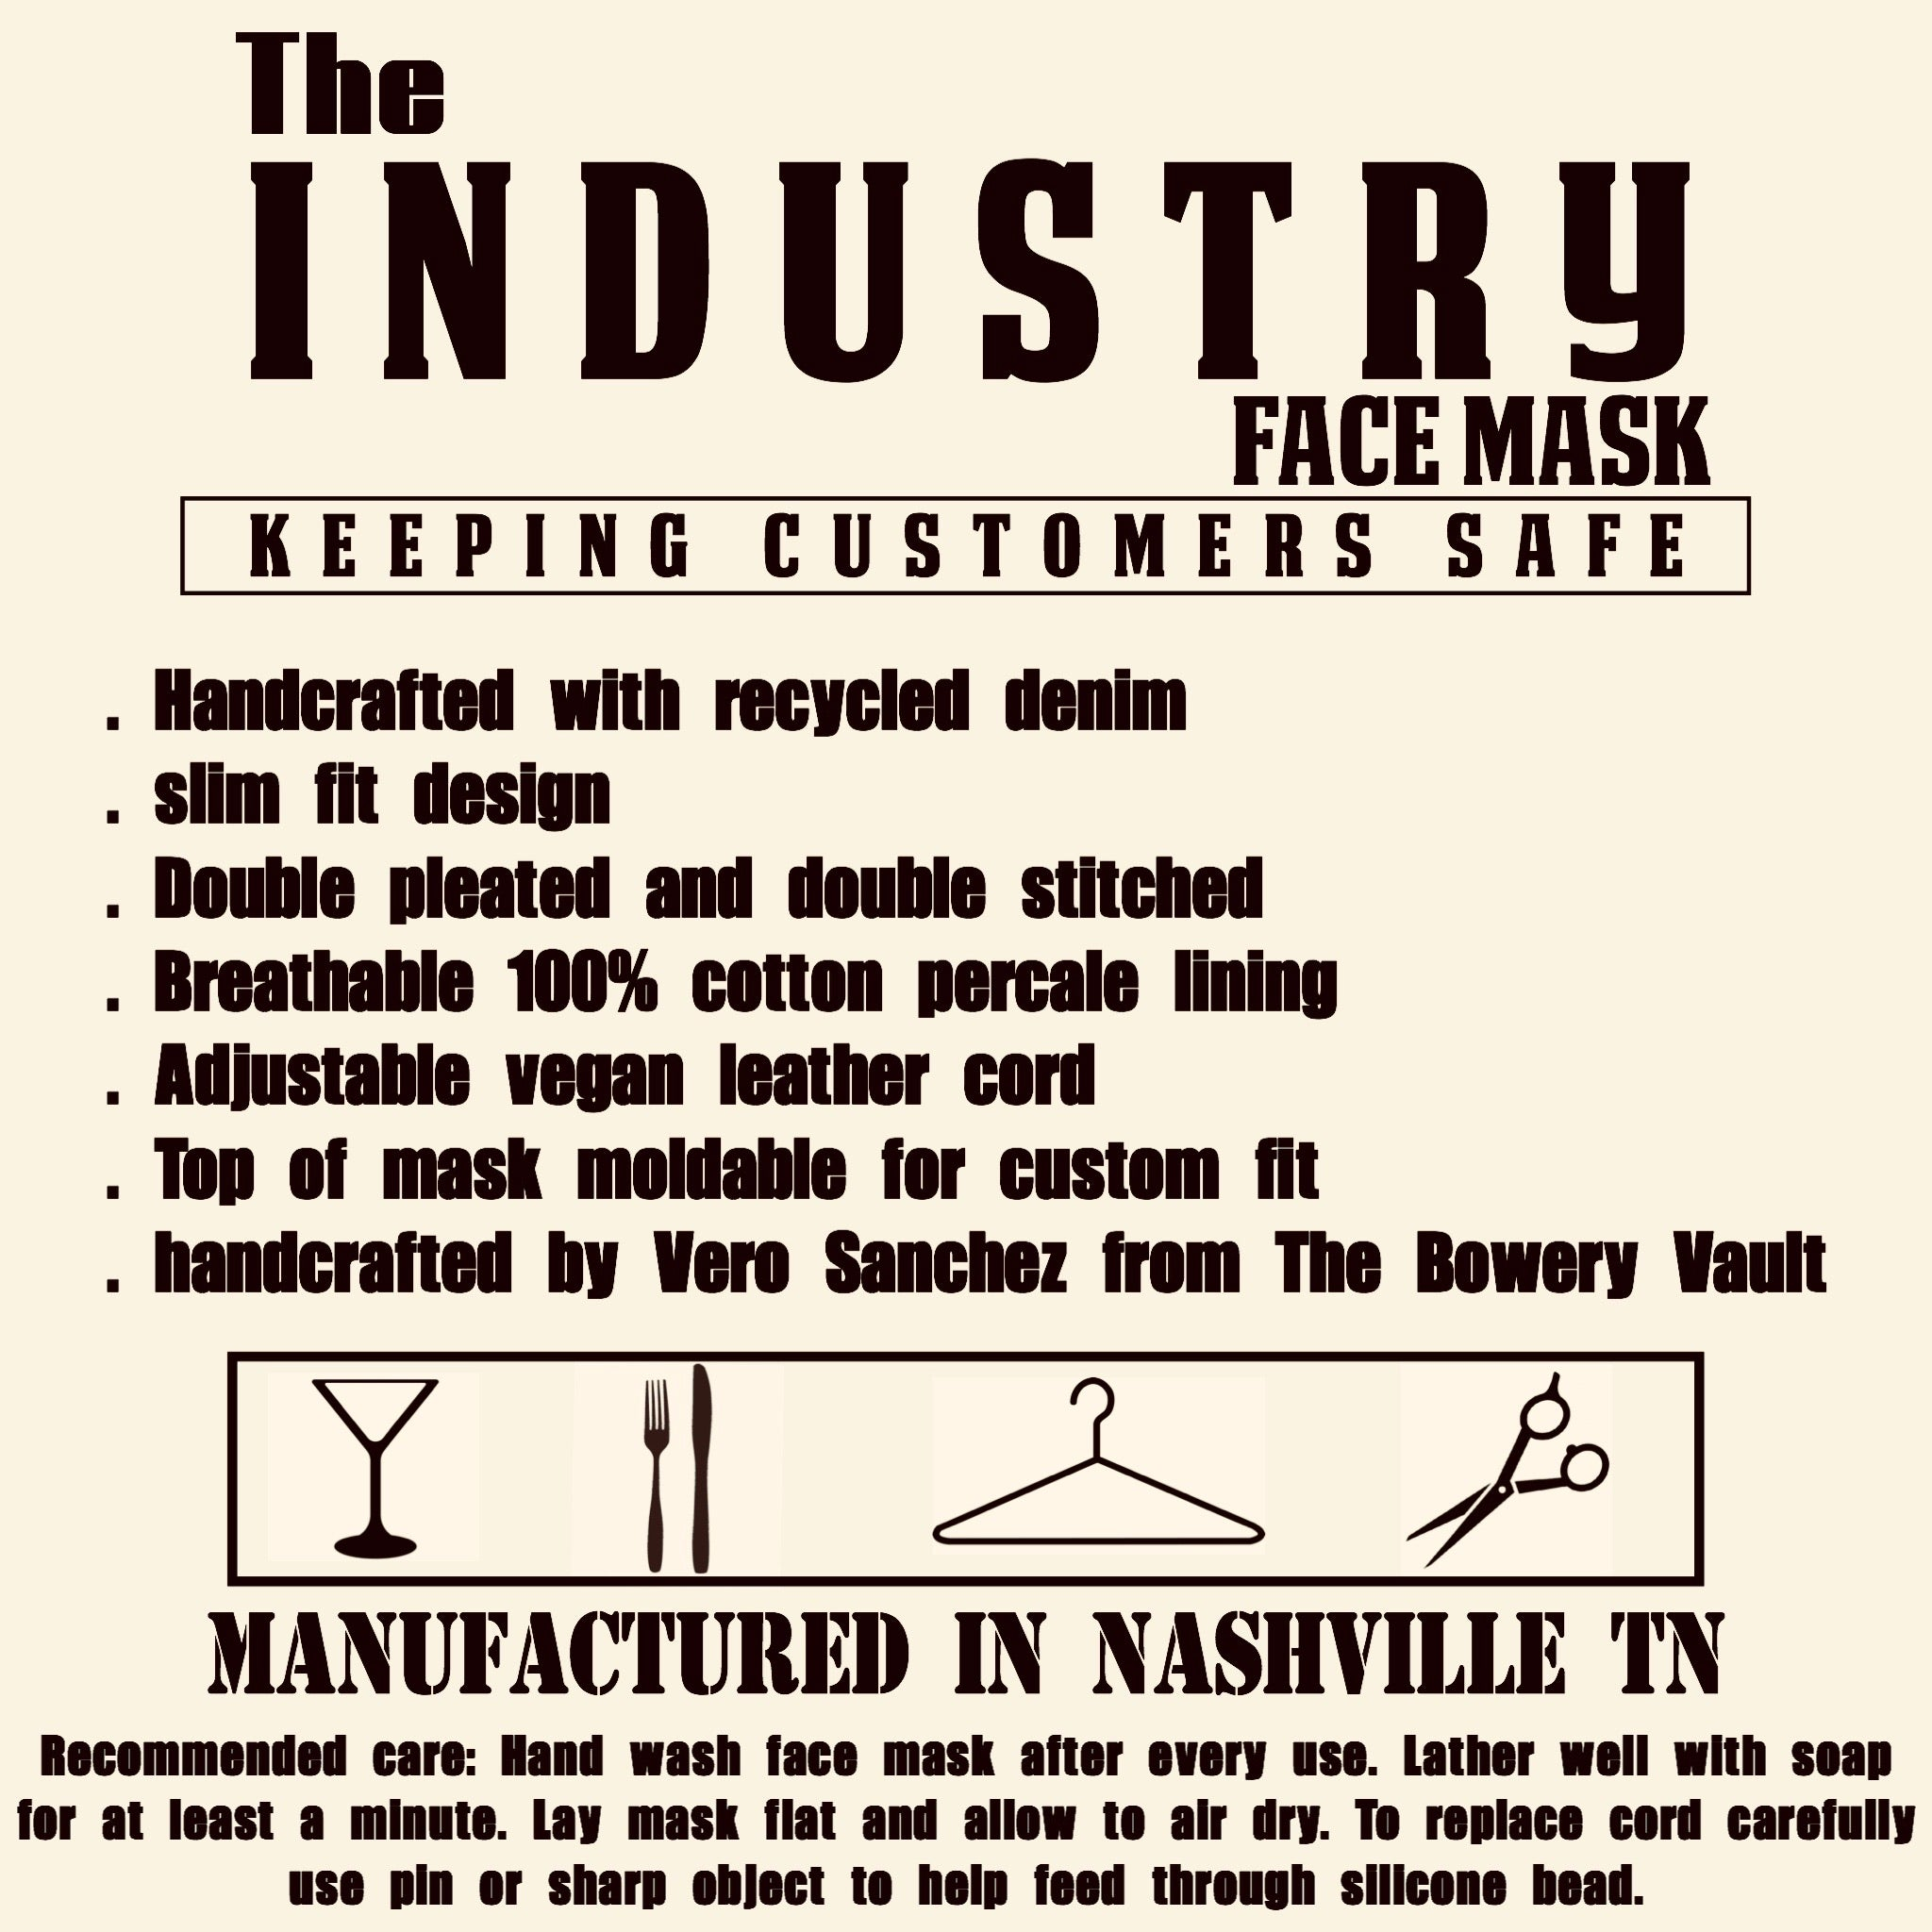 The Industry Face Mask